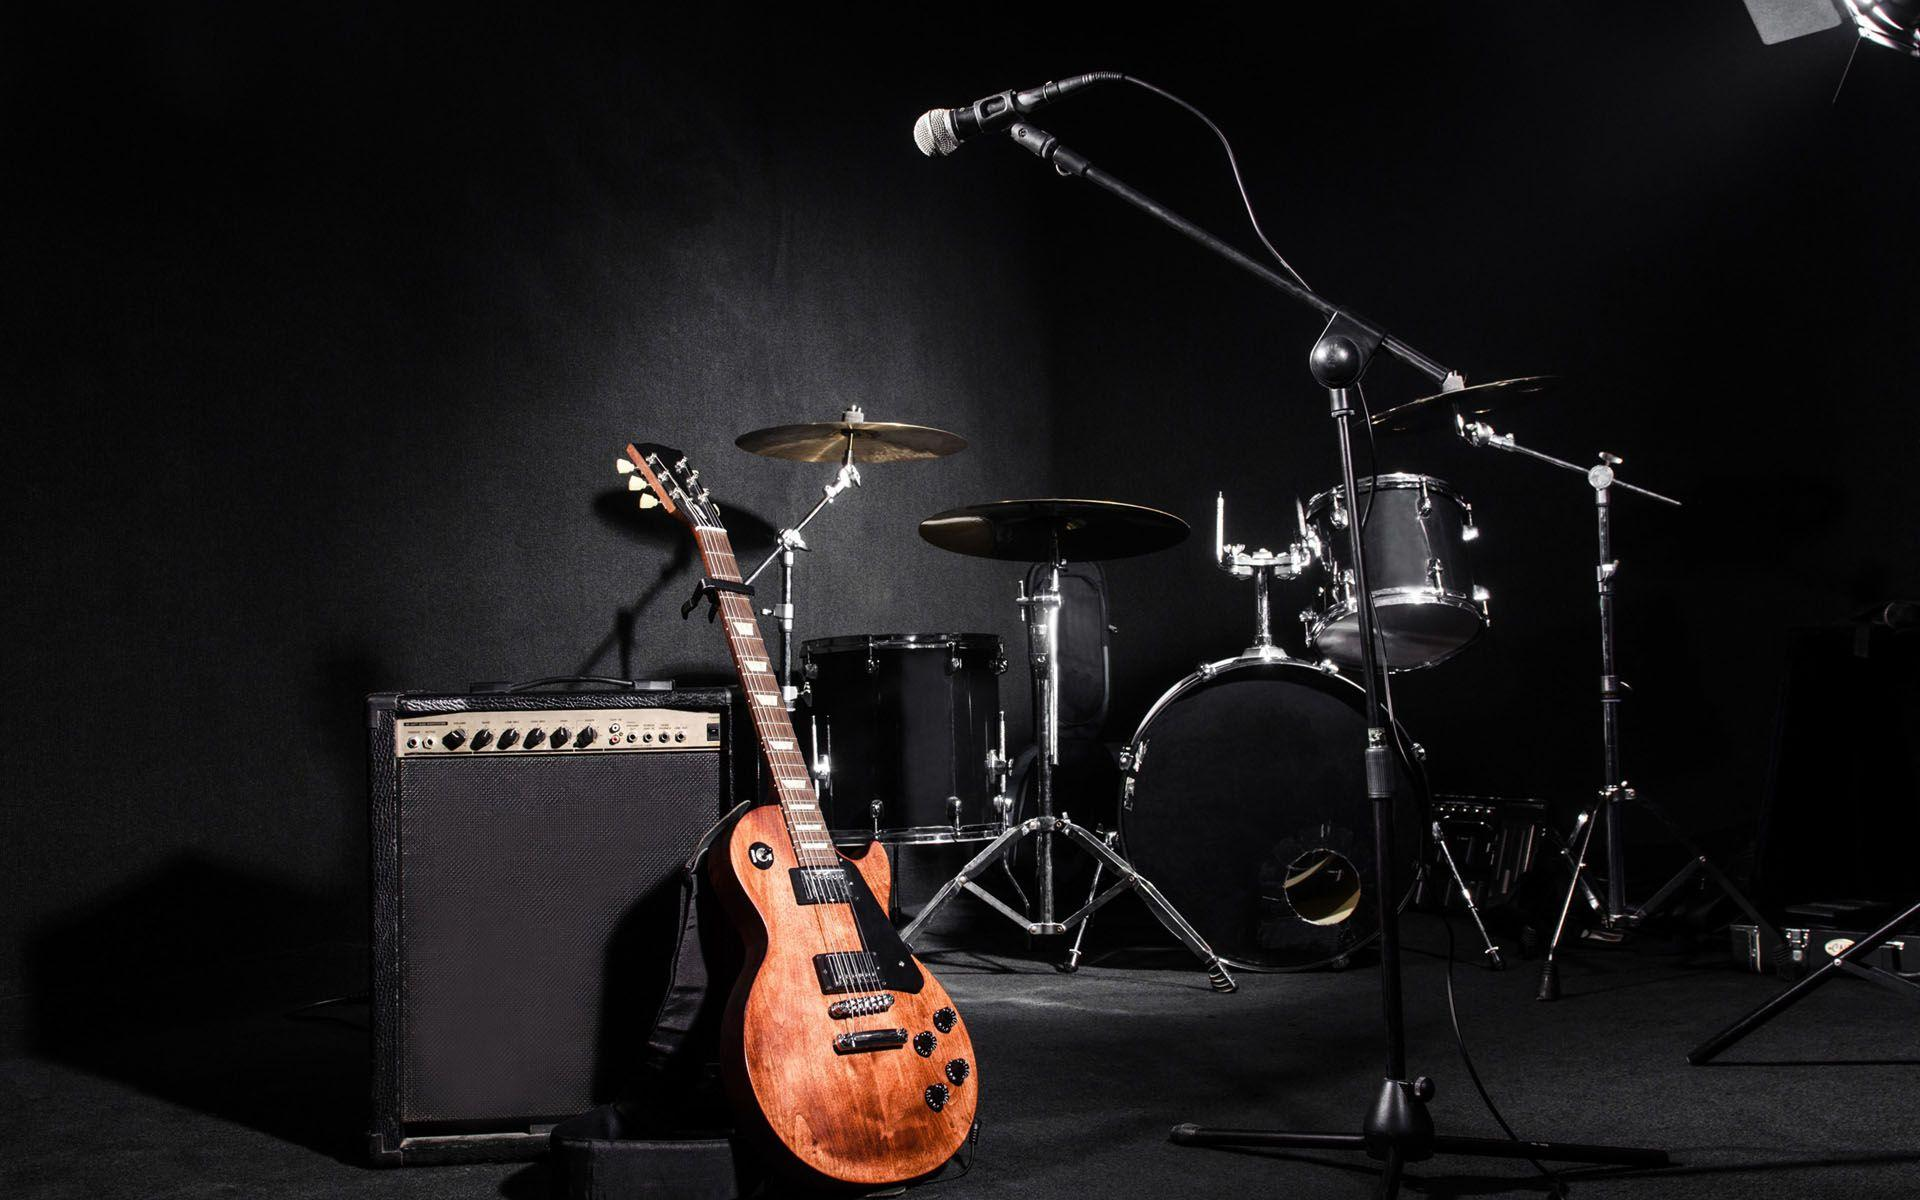 wallpaper.wiki-electric-guitar-image-with-drum-set-PIC-WPB006929 ...